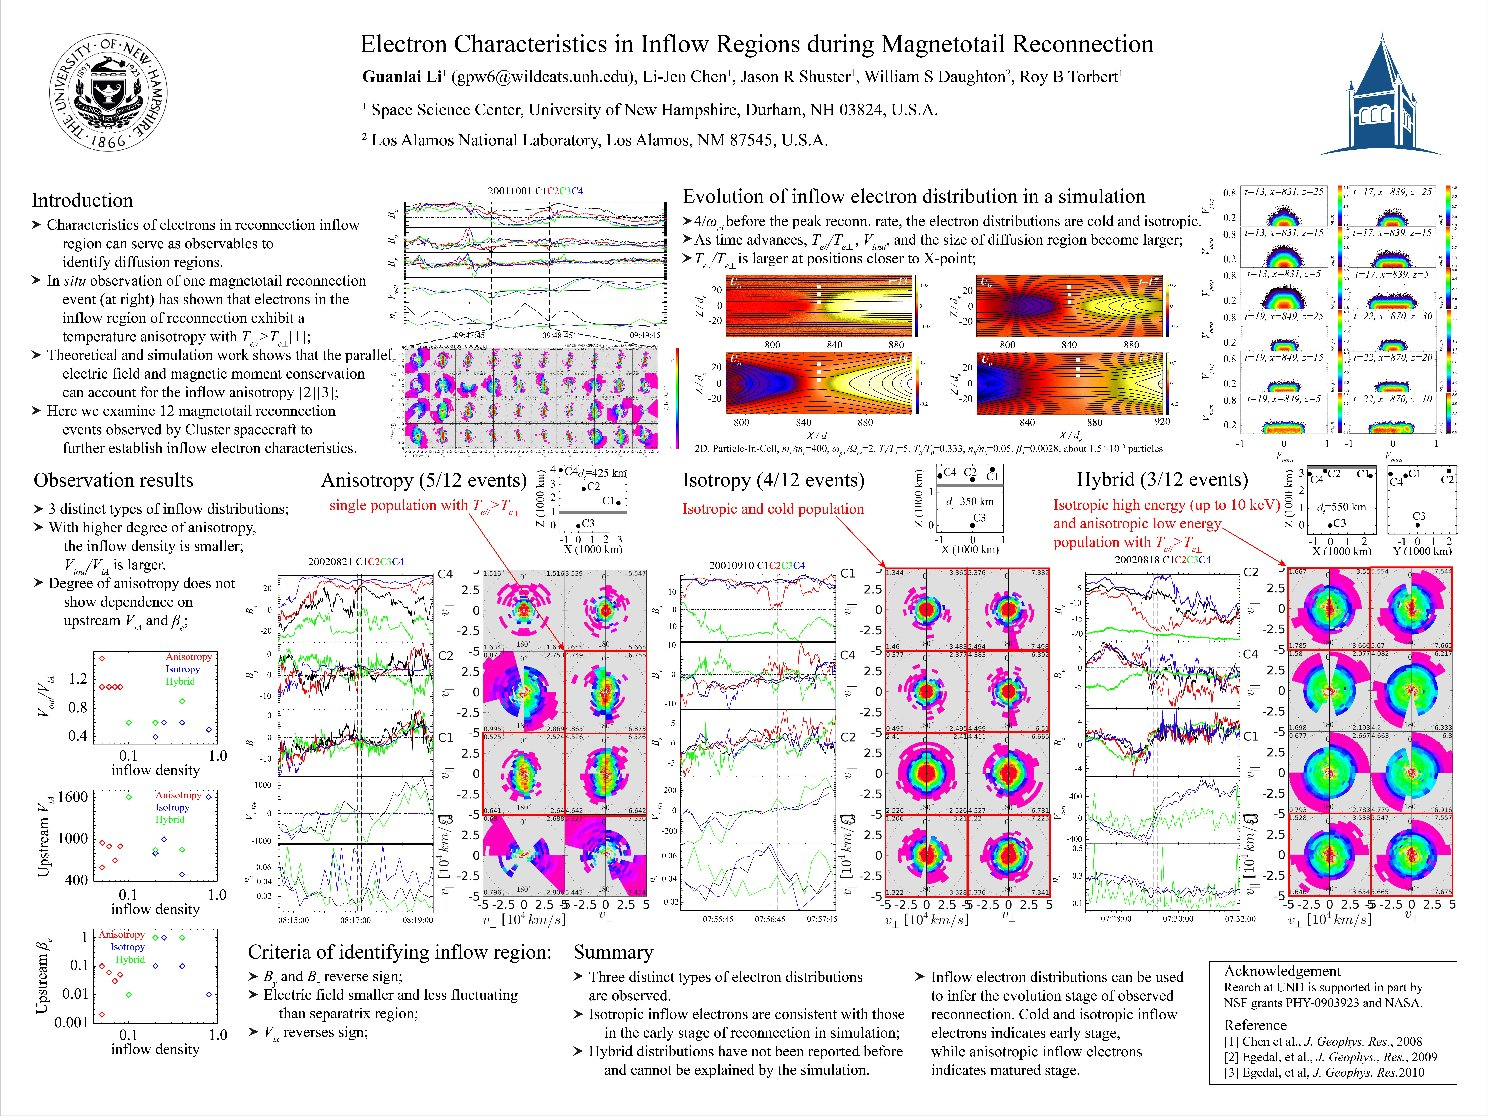 Electron Characteristics In Inflow Regions During Magnetotail Reconnection by liguanlai